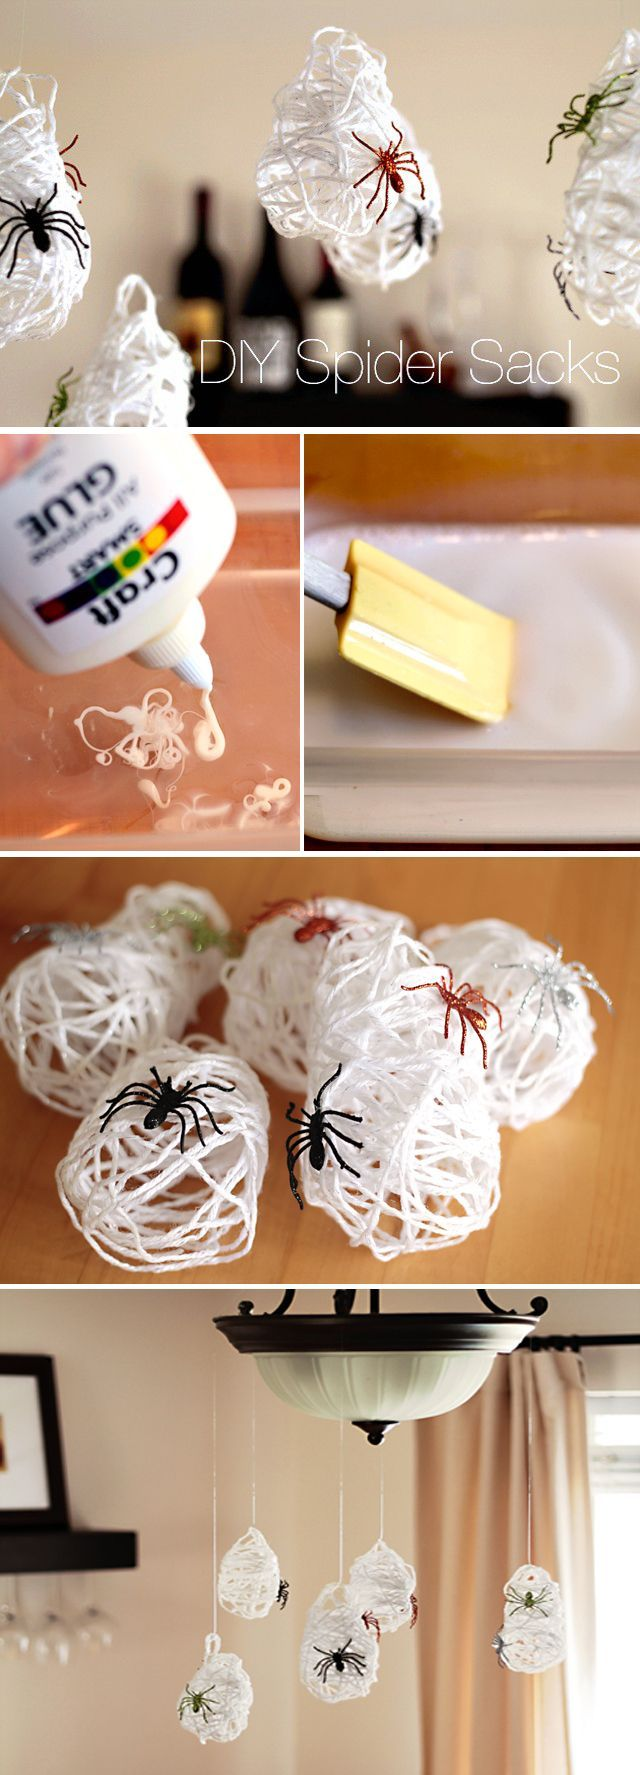 DIY Halloween Spider Sack Decor - the perfect Halloween craft to make with kids. Lots of hands on fun and the result is so impressive!